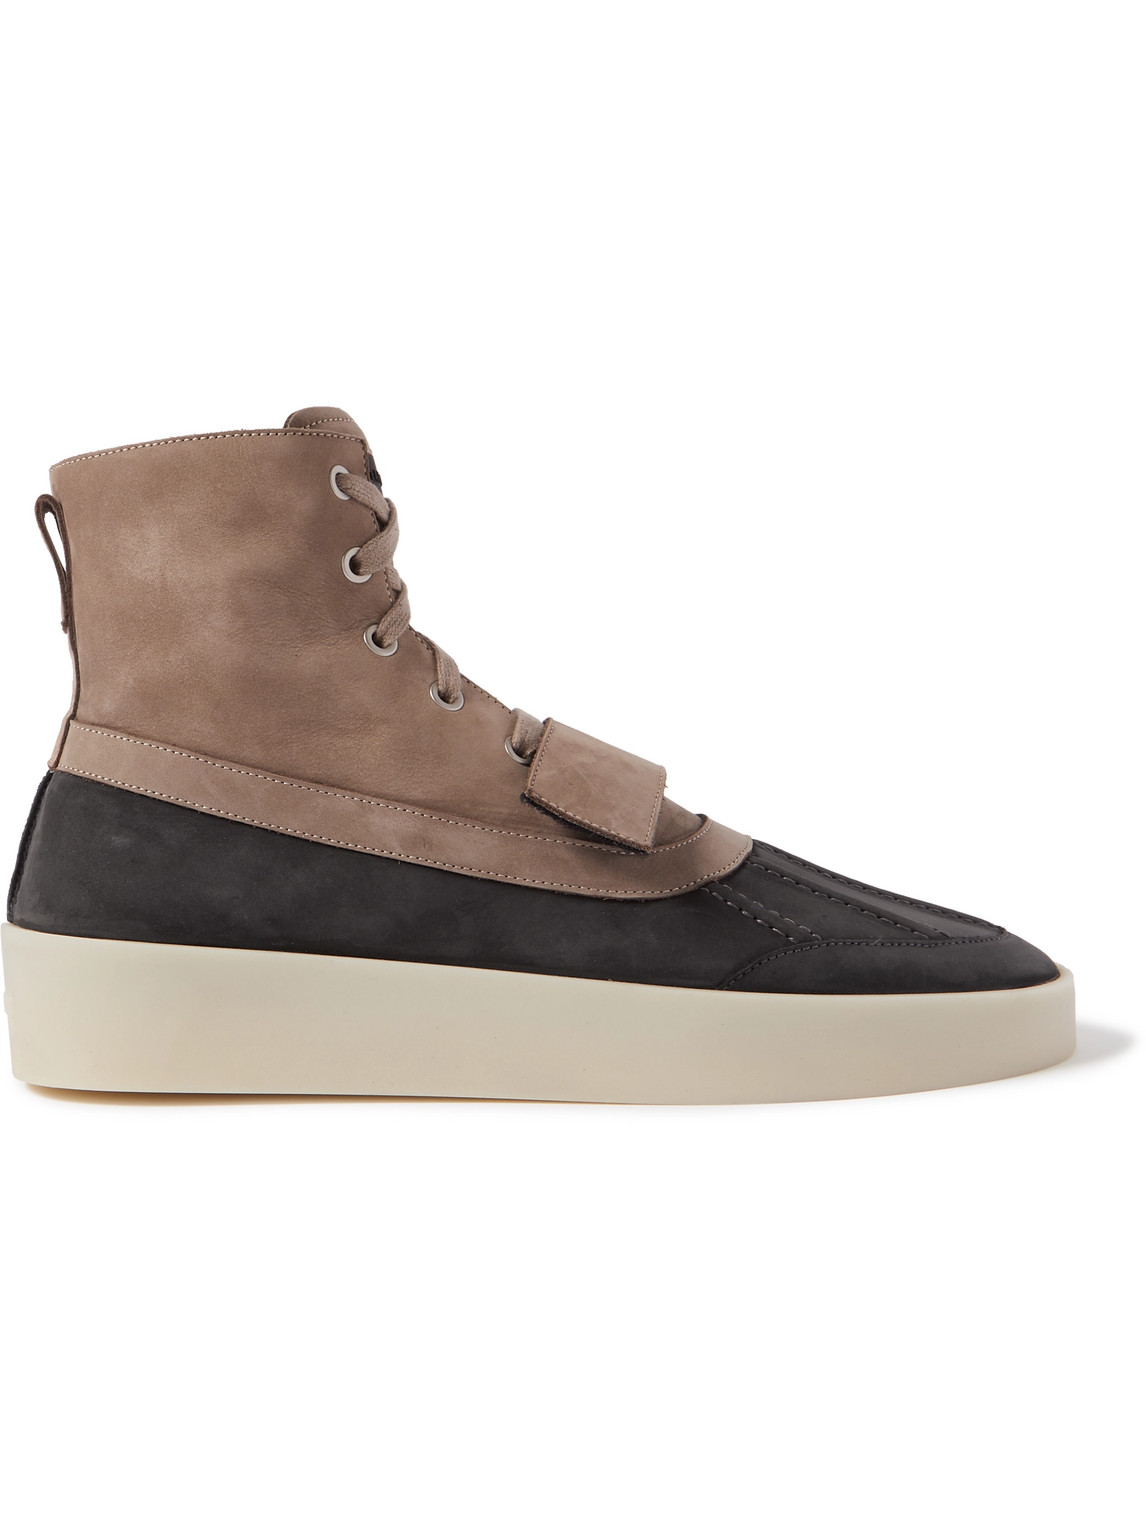 Fear Of God Boots PANELLED NUBUCK DUCK BOOTS